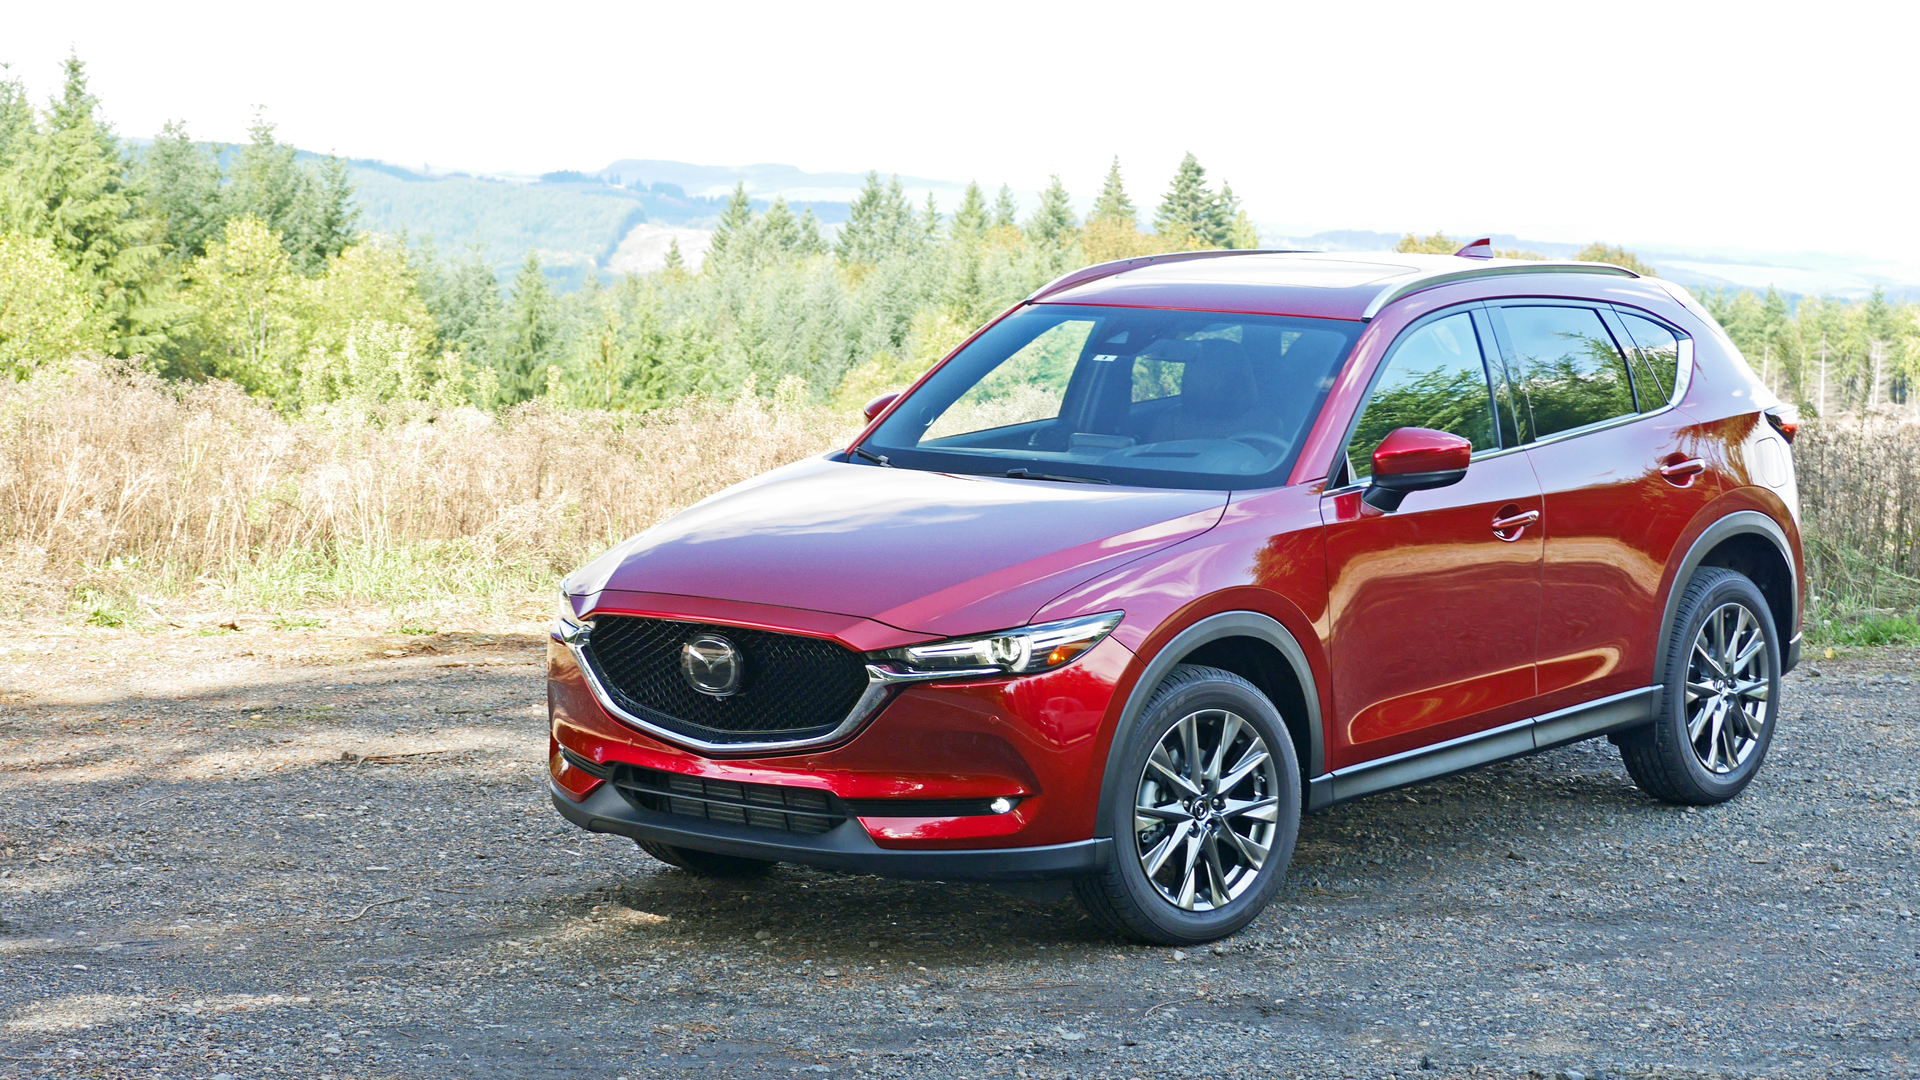 2021 mazda cx-5 review | prices, specs, features and